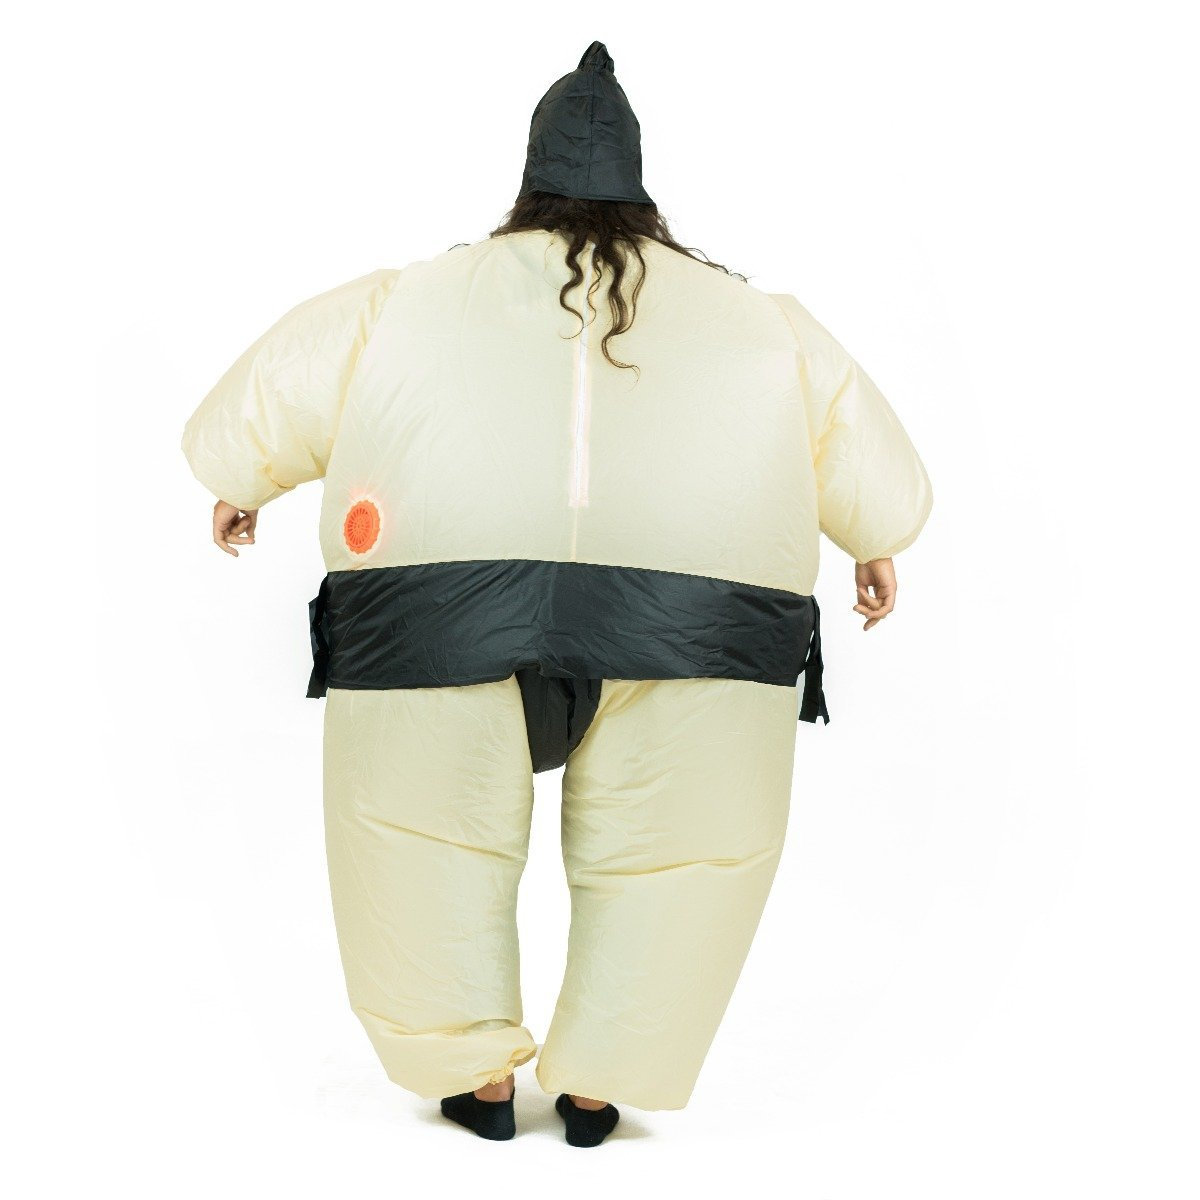 Bodysocks - Inflatable Sumo Wrestler Costume